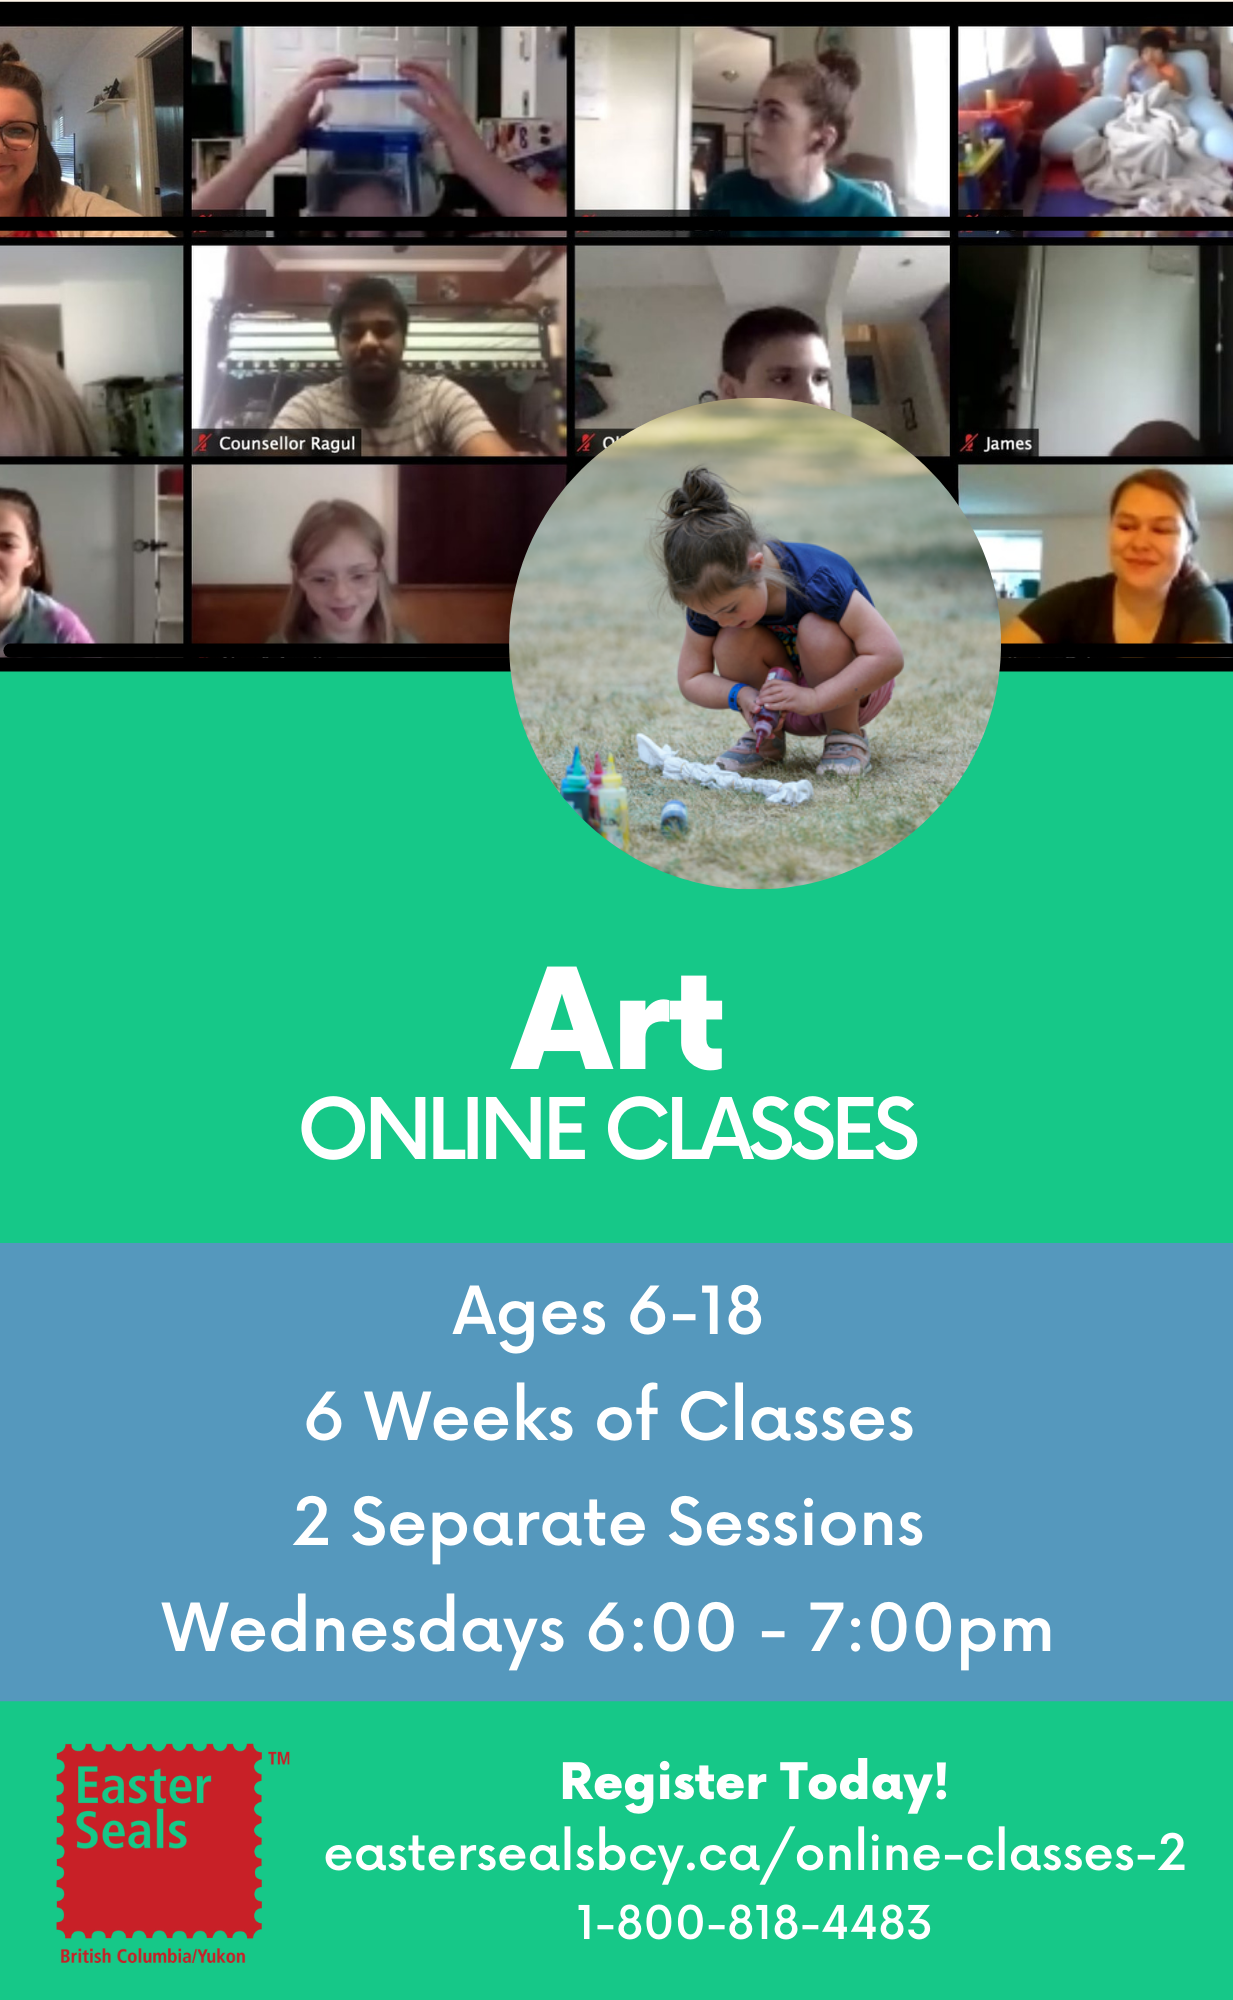 Art Classes for Ages 6-18